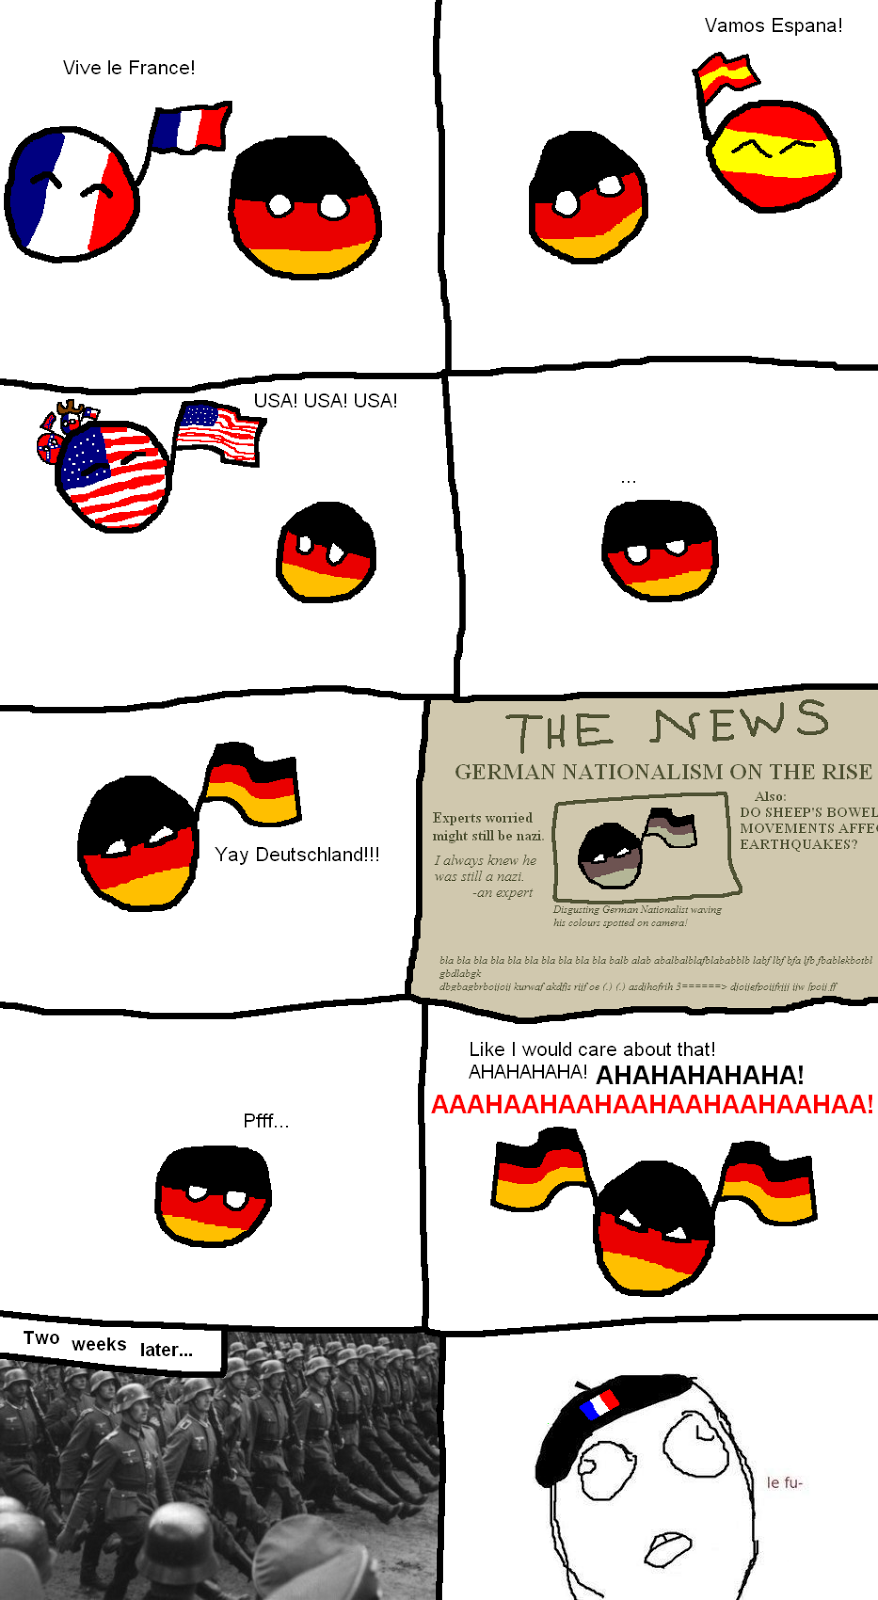 germany nationalism Responded to ultranationalism appeasement as a response to ultranationalism failure of the league of nations charismatic leaders germany after wwi japan after wwi countries in crisis recap: what is ultranationalism propaganda and ultranationalism russian ultranationalism ultranationalism.